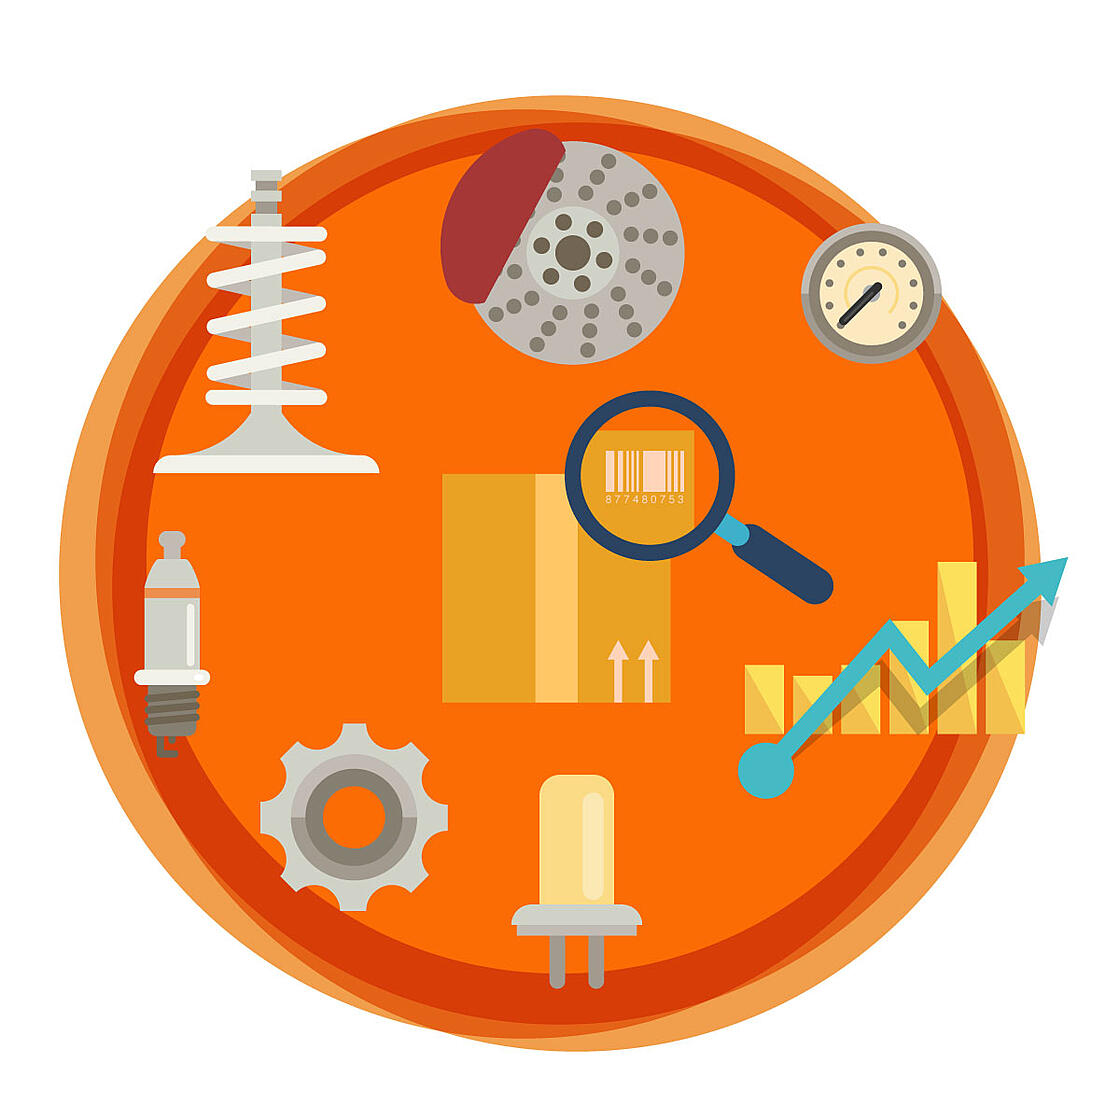 Various images of automotive parts, packing boxes, and sales analytics arranged inside of an orange circular background